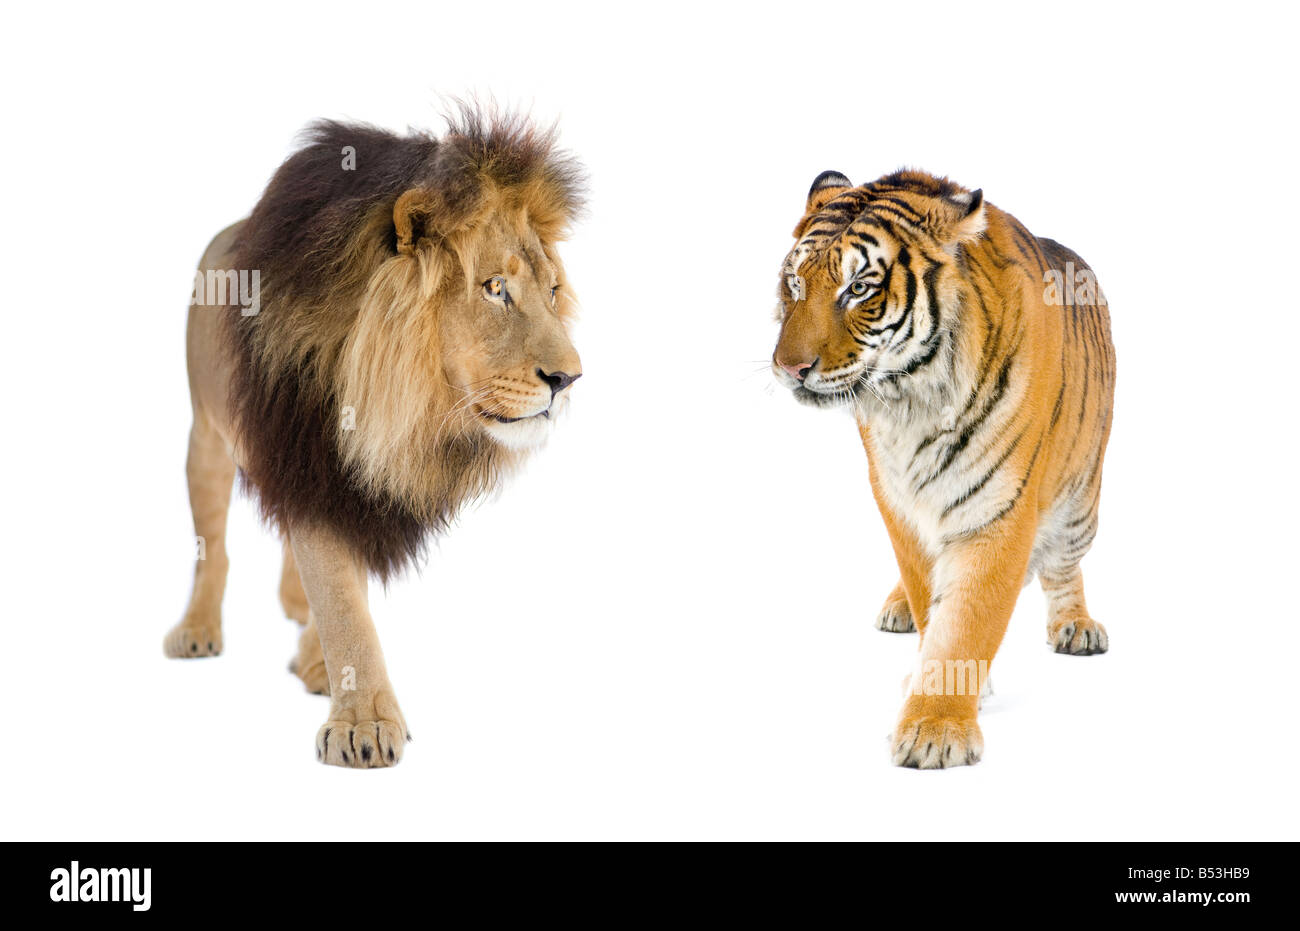 lion and tiger in front of a white background stock photo 20363149